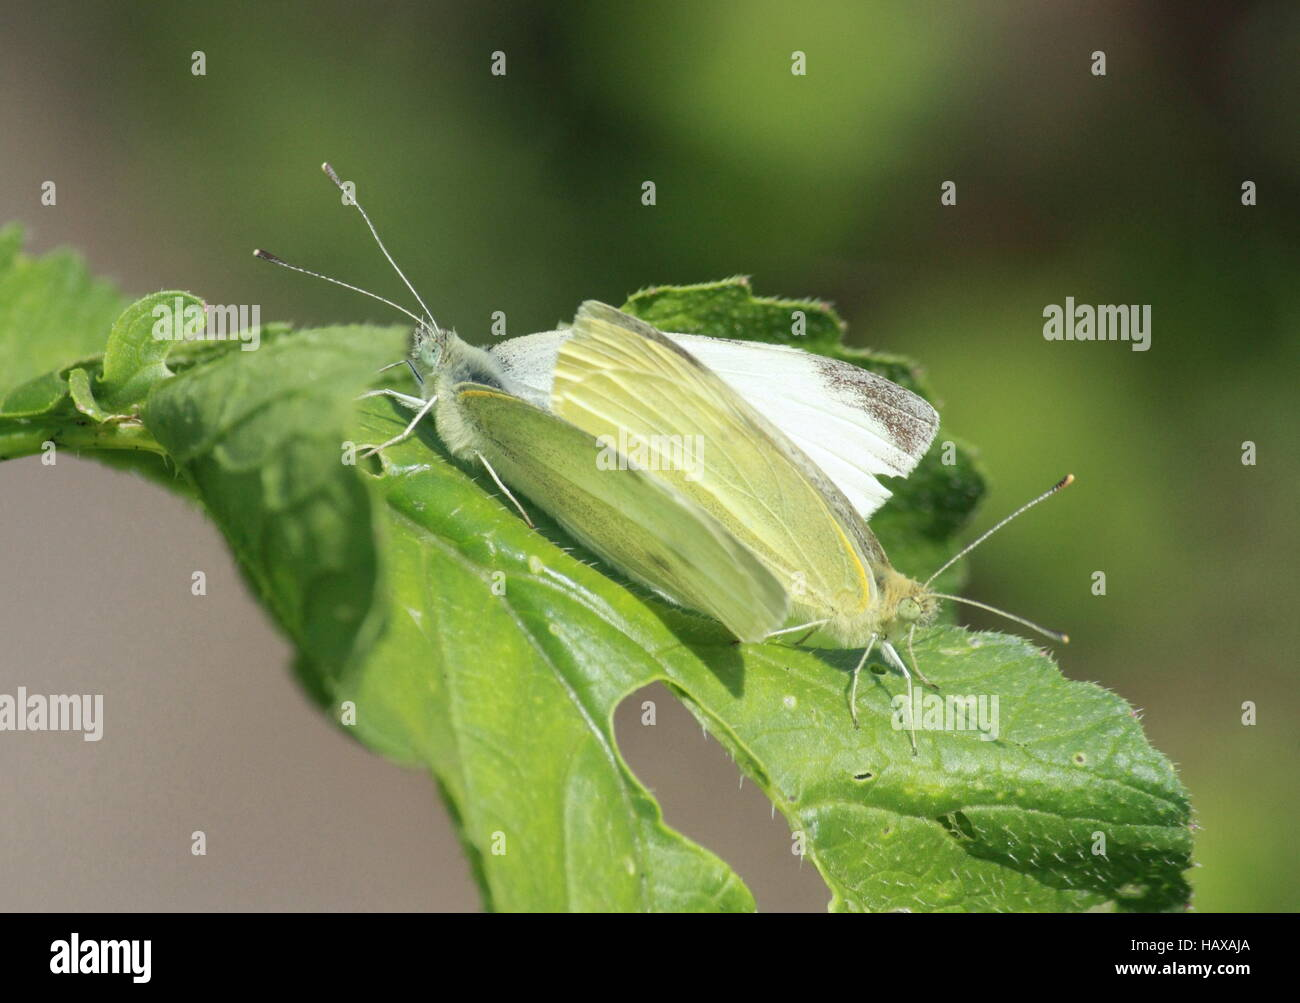 Cabbage butterflies, pairing - Stock Image